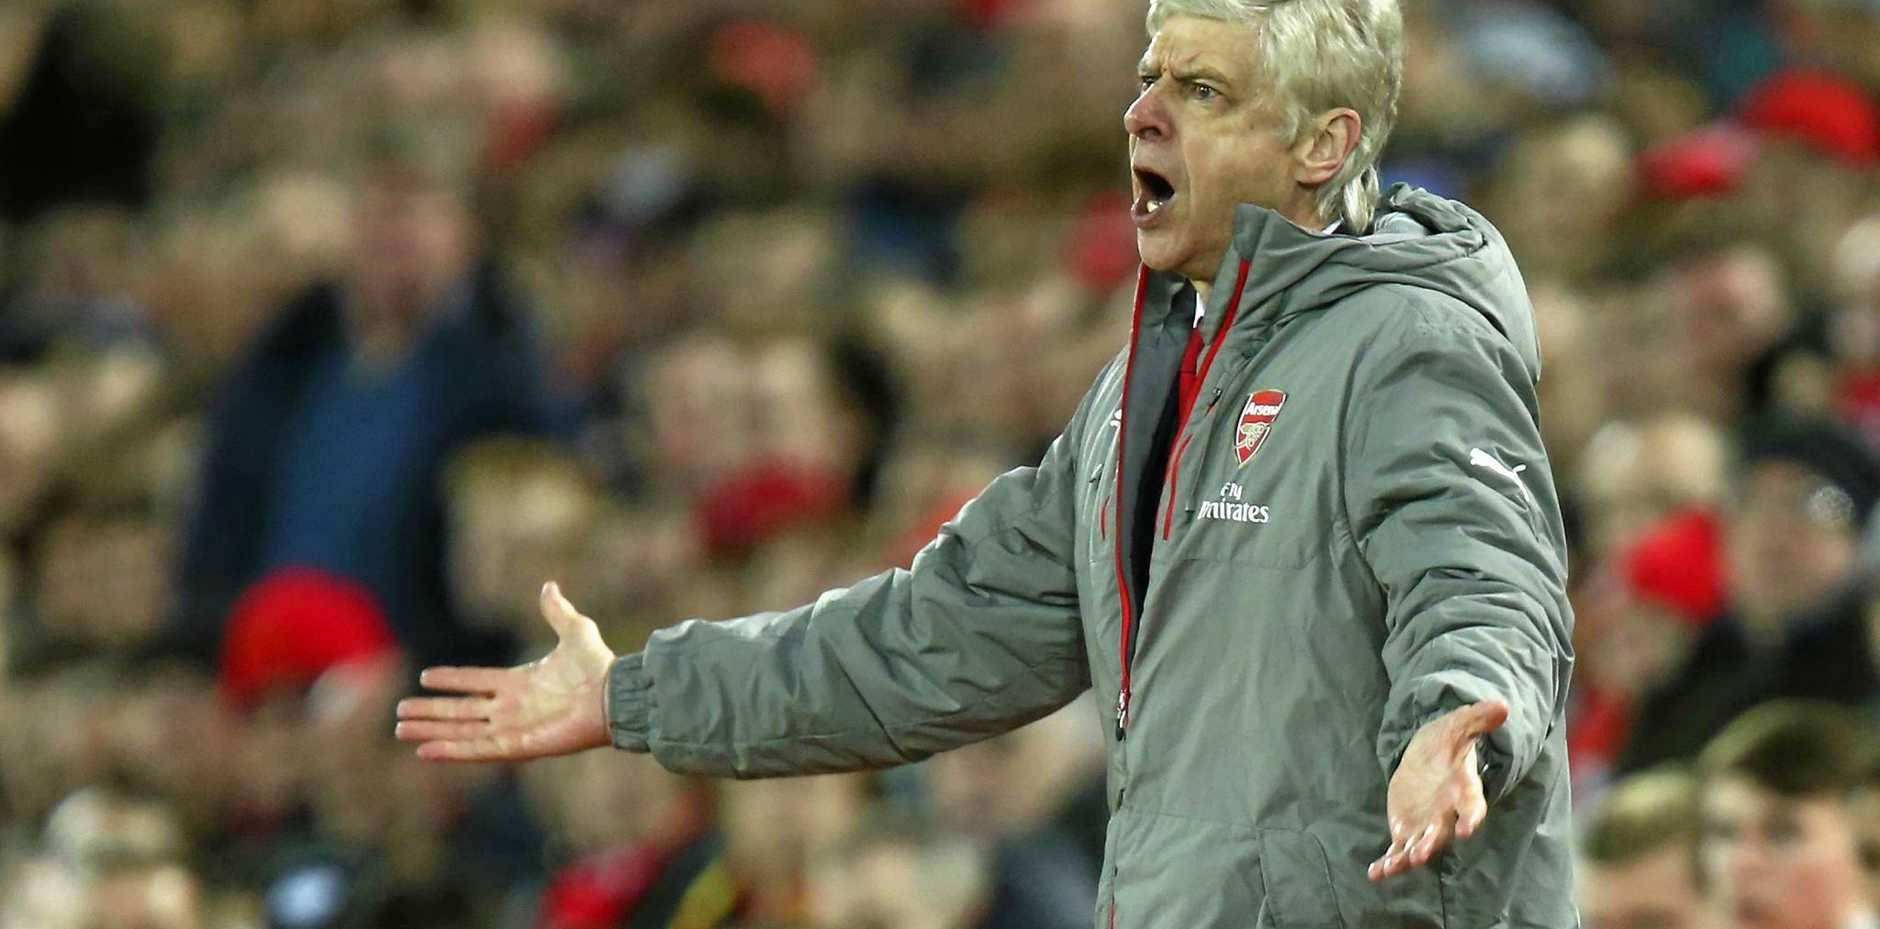 Pressure is mounting on Arsenal manager Arsene Wenger after defeat to Liverpool.